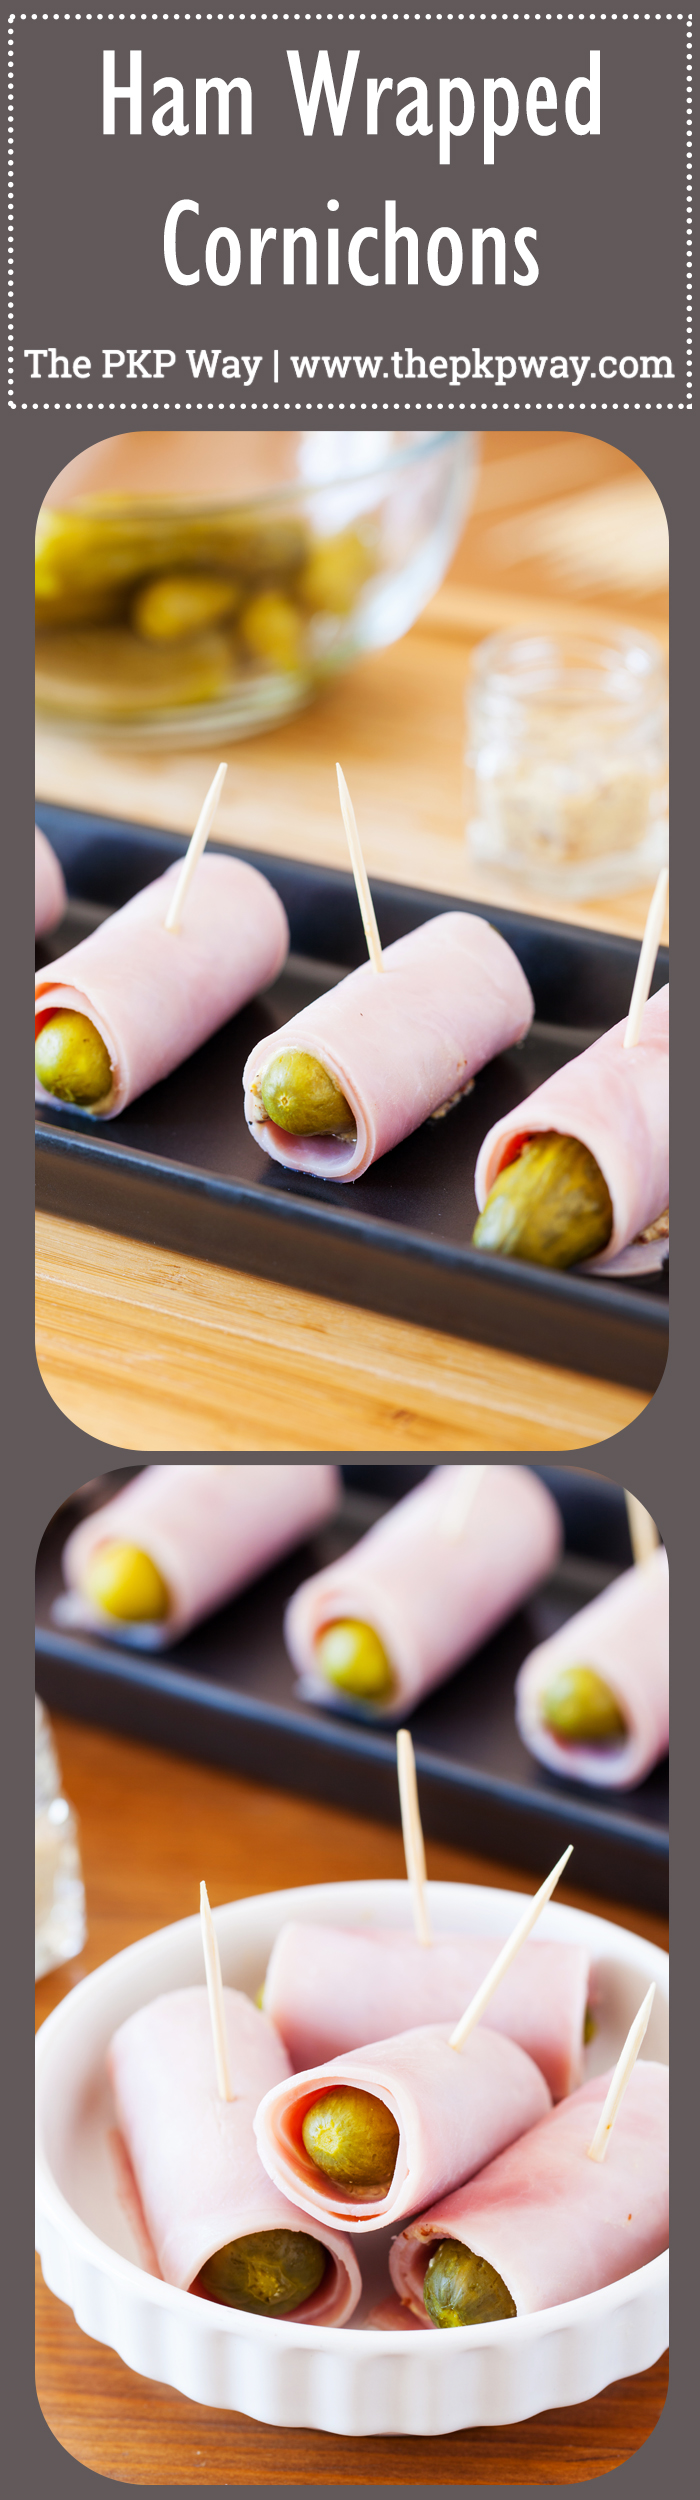 Ham Wrapped Cornichons are salty, sour, and crunchy. Made with only three ingredients, they make the perfect appetizer or game day snack!